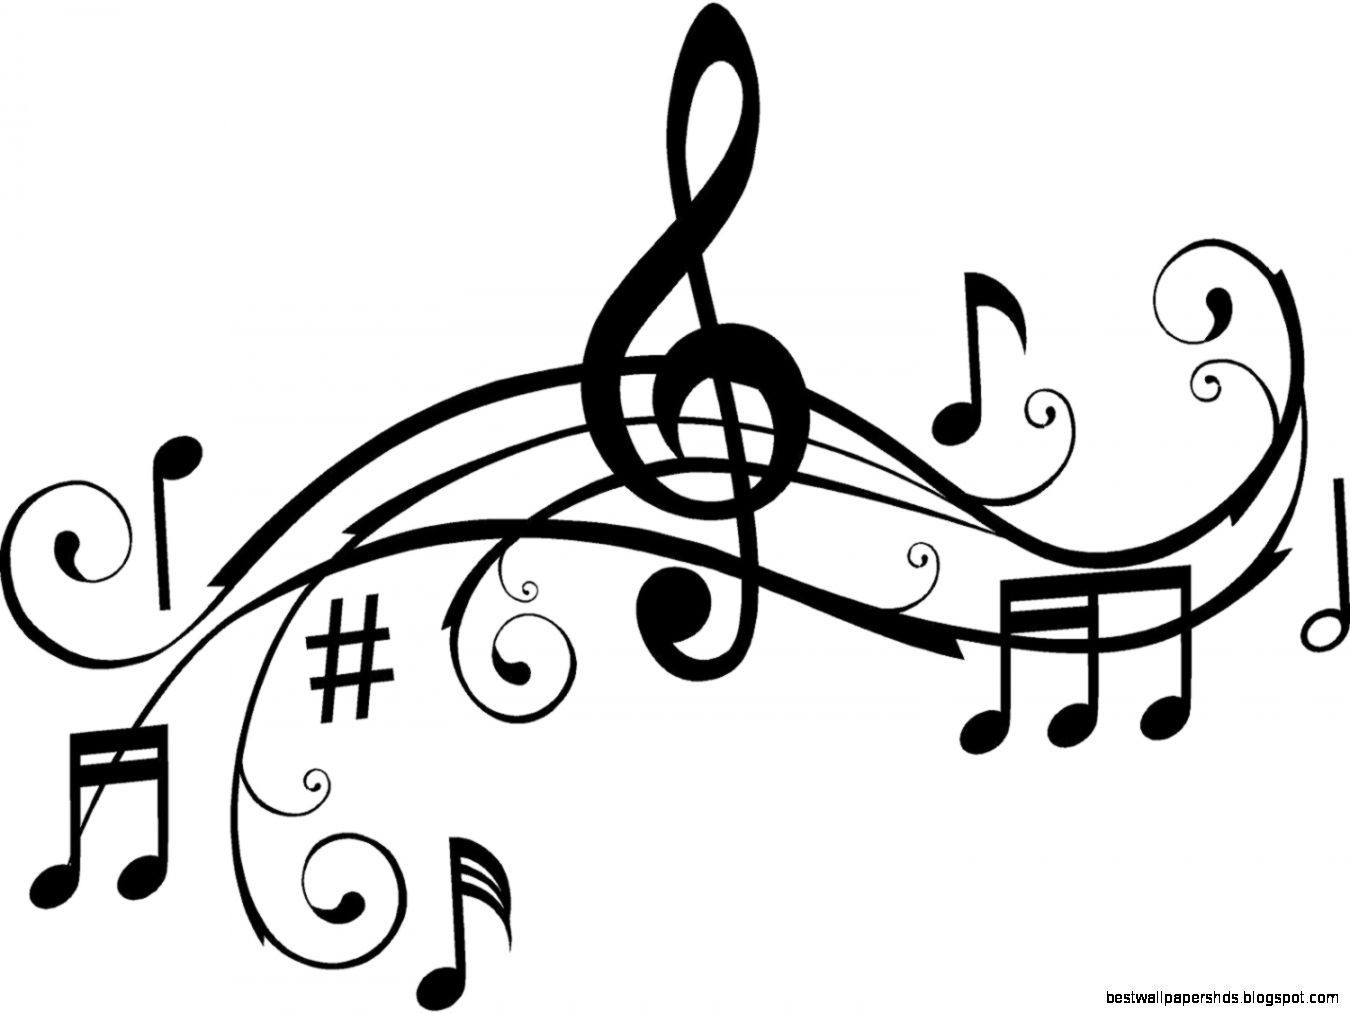 music notes clipart black and white clipart panda free clipart rh pinterest com clipart of musical notes free clipart of music notes